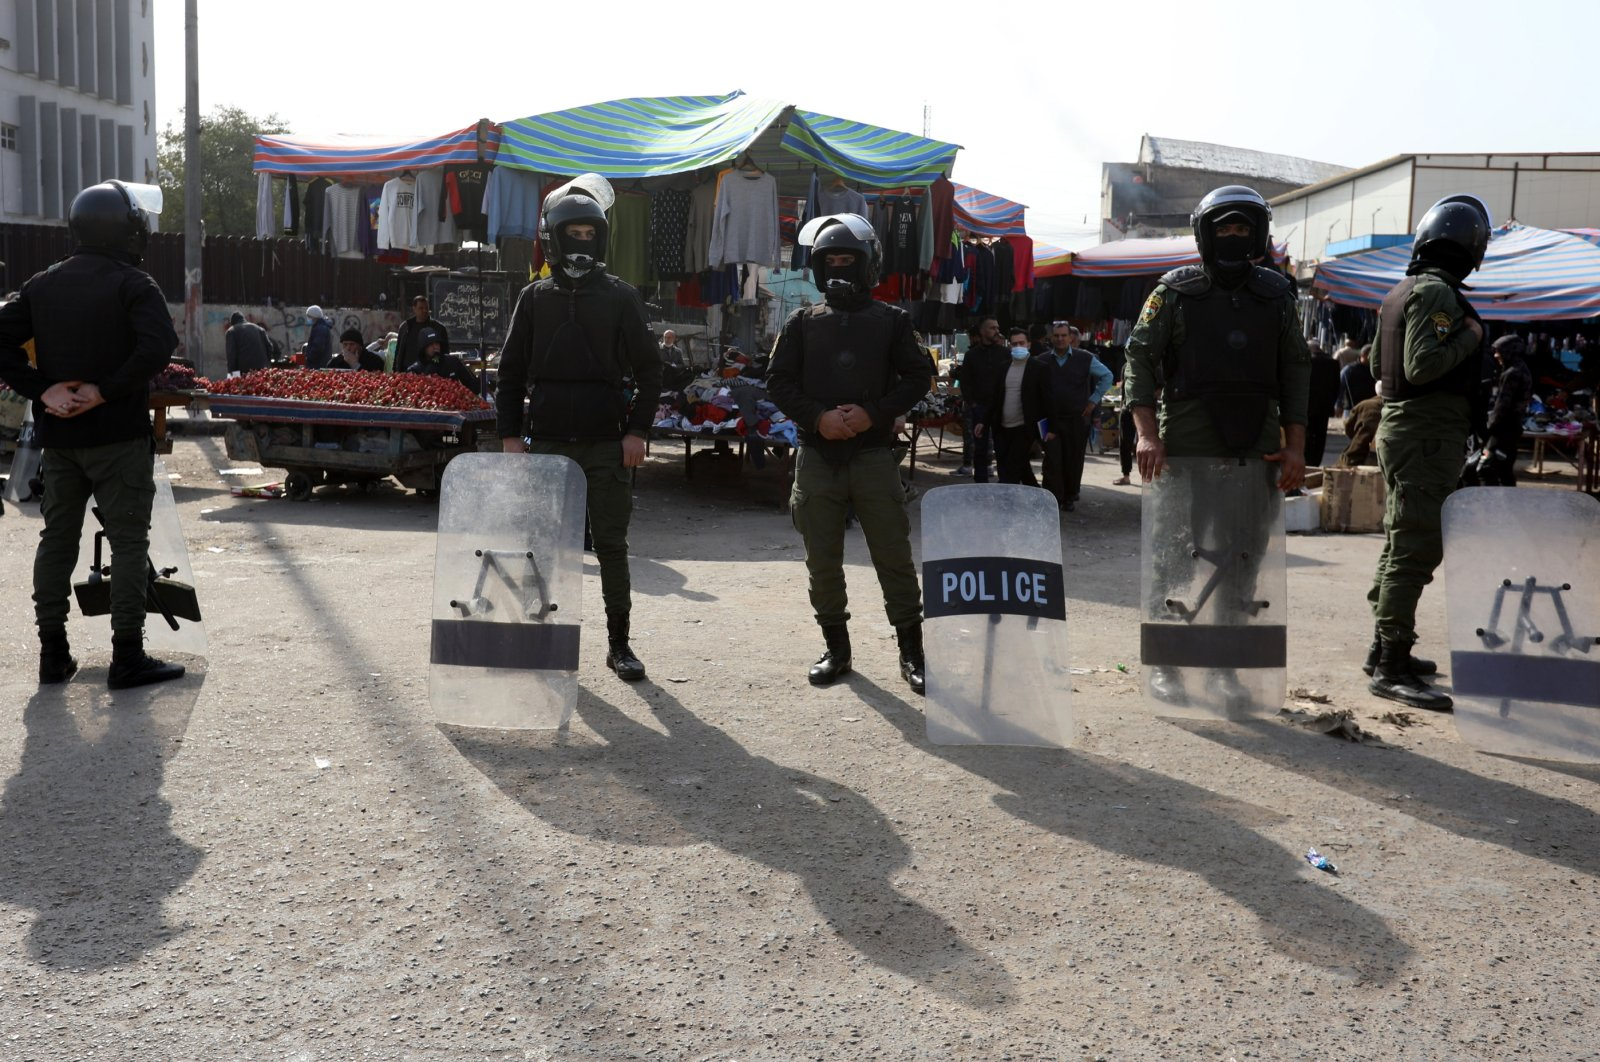 Police forces stand guard as Iraqis protest at the site of a suicide bomb attack that targeted a popular market on Jan. 21, Baghdad, Iraq, Jan. 25, 2021. (EPA File Photo)